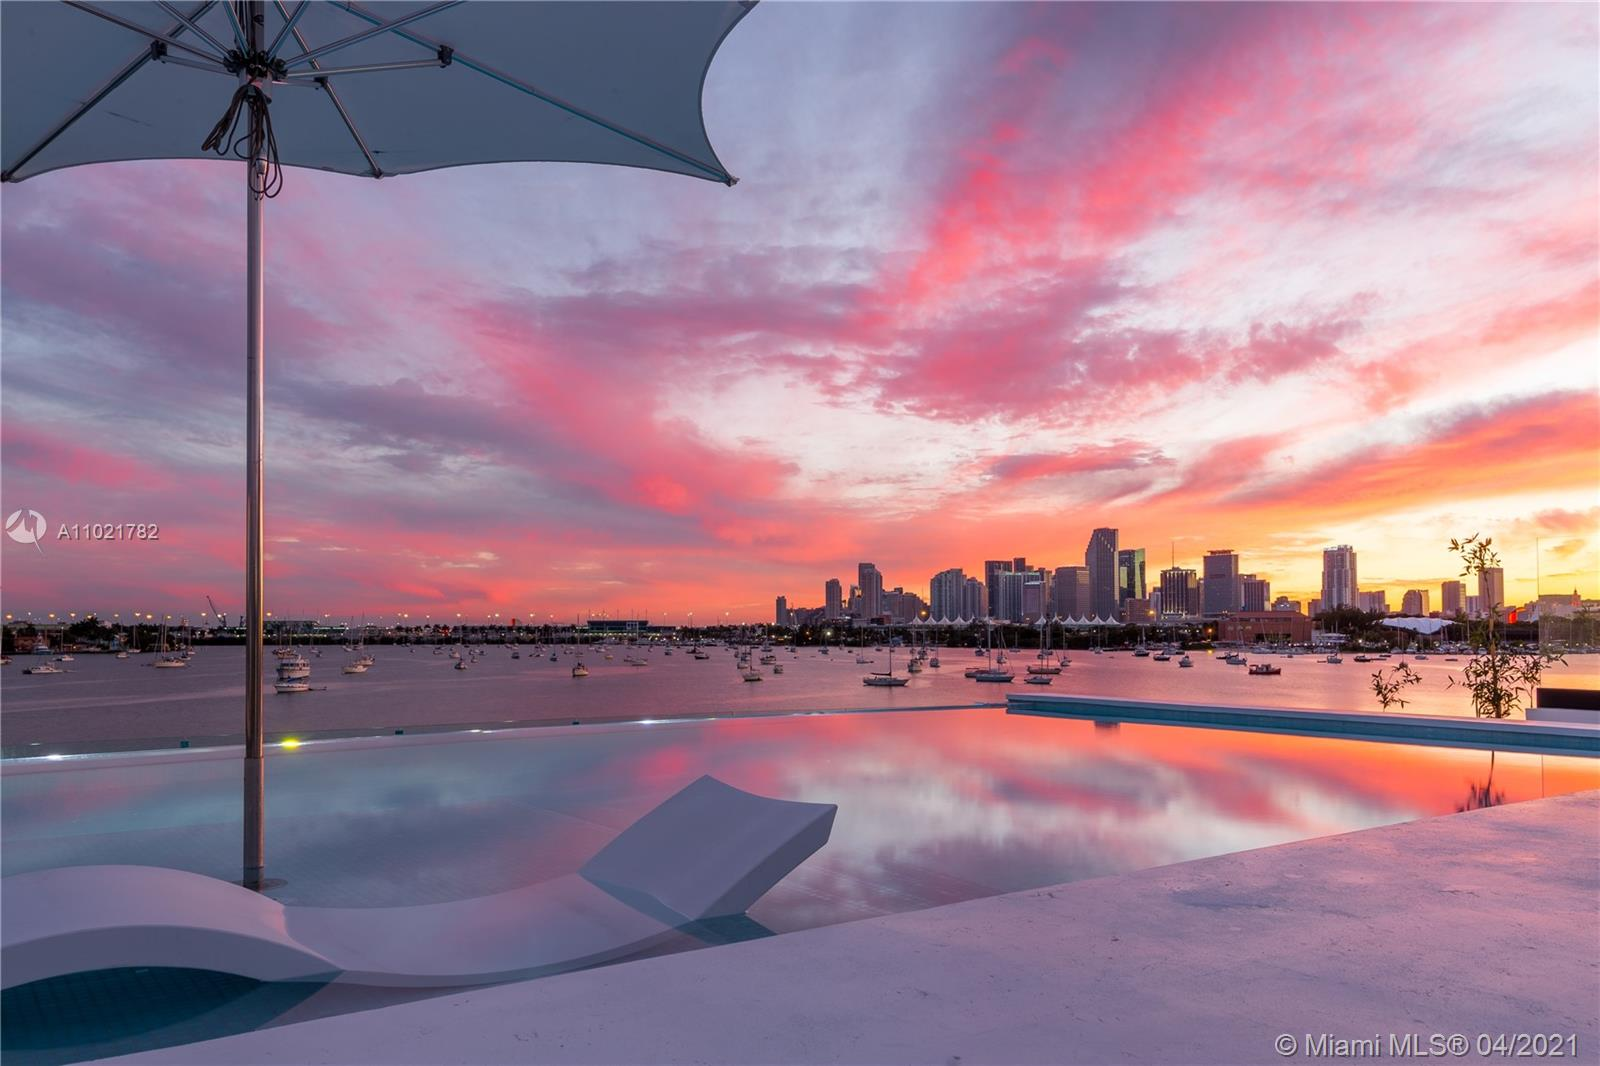 """Welcome to Villa Venetian, the most spectacular Bayfront Villa located on the Venetian Islands. With rarely available Southern exposure, the Villa has unparalleled views of Biscayne Bay and the Miami skyline. This """"smart home"""" completed in 2015 is fully automated with a Savant system that operates everything from custom lighting, and automatic shades to music and television. Sophisticated European design featuring white oak floors, soaring ceilings, one of a kind rooftop infinity pool, expansive terrace with 360 degree views, home theater, elevator, and sauna are just a few of the unique features of this home. Exclusive and convenient location just minutes from Sunset Harbour and Lincoln Rd and a short distance to Downtown Miami, Brickell, and the Design District."""